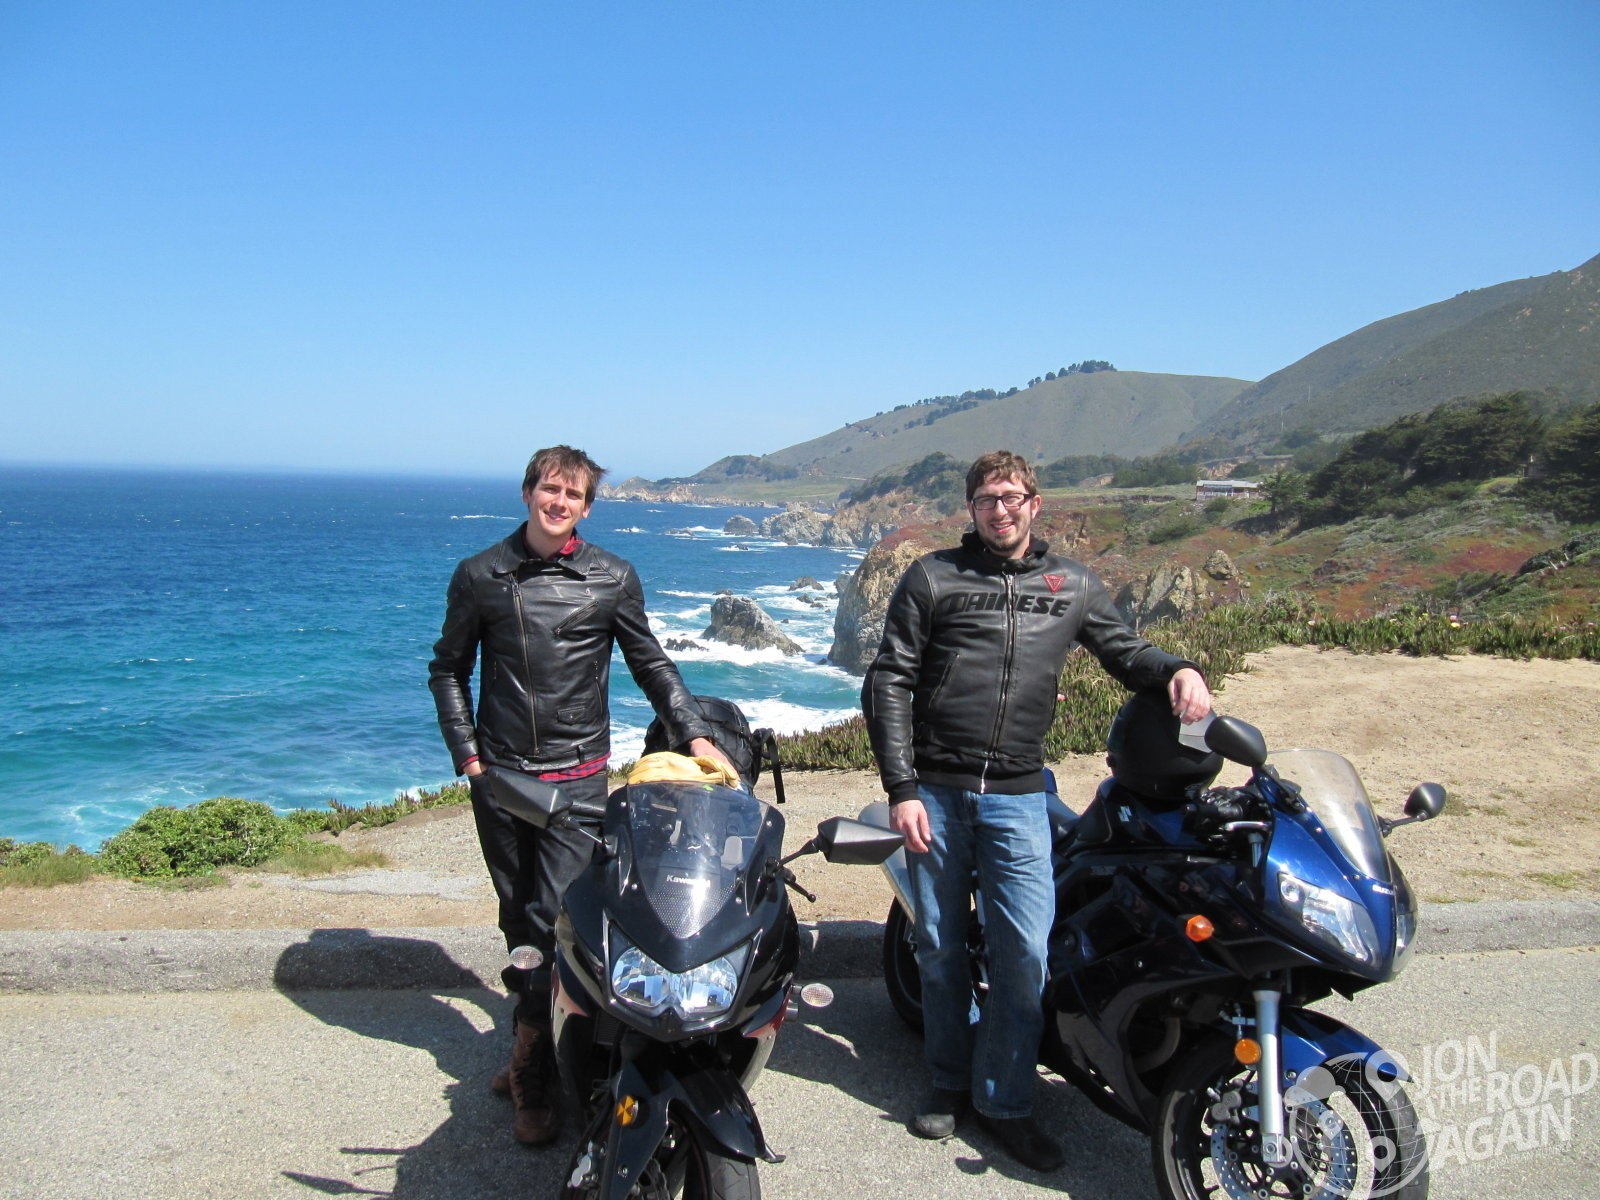 Posing with our motorcycles at Highway 1